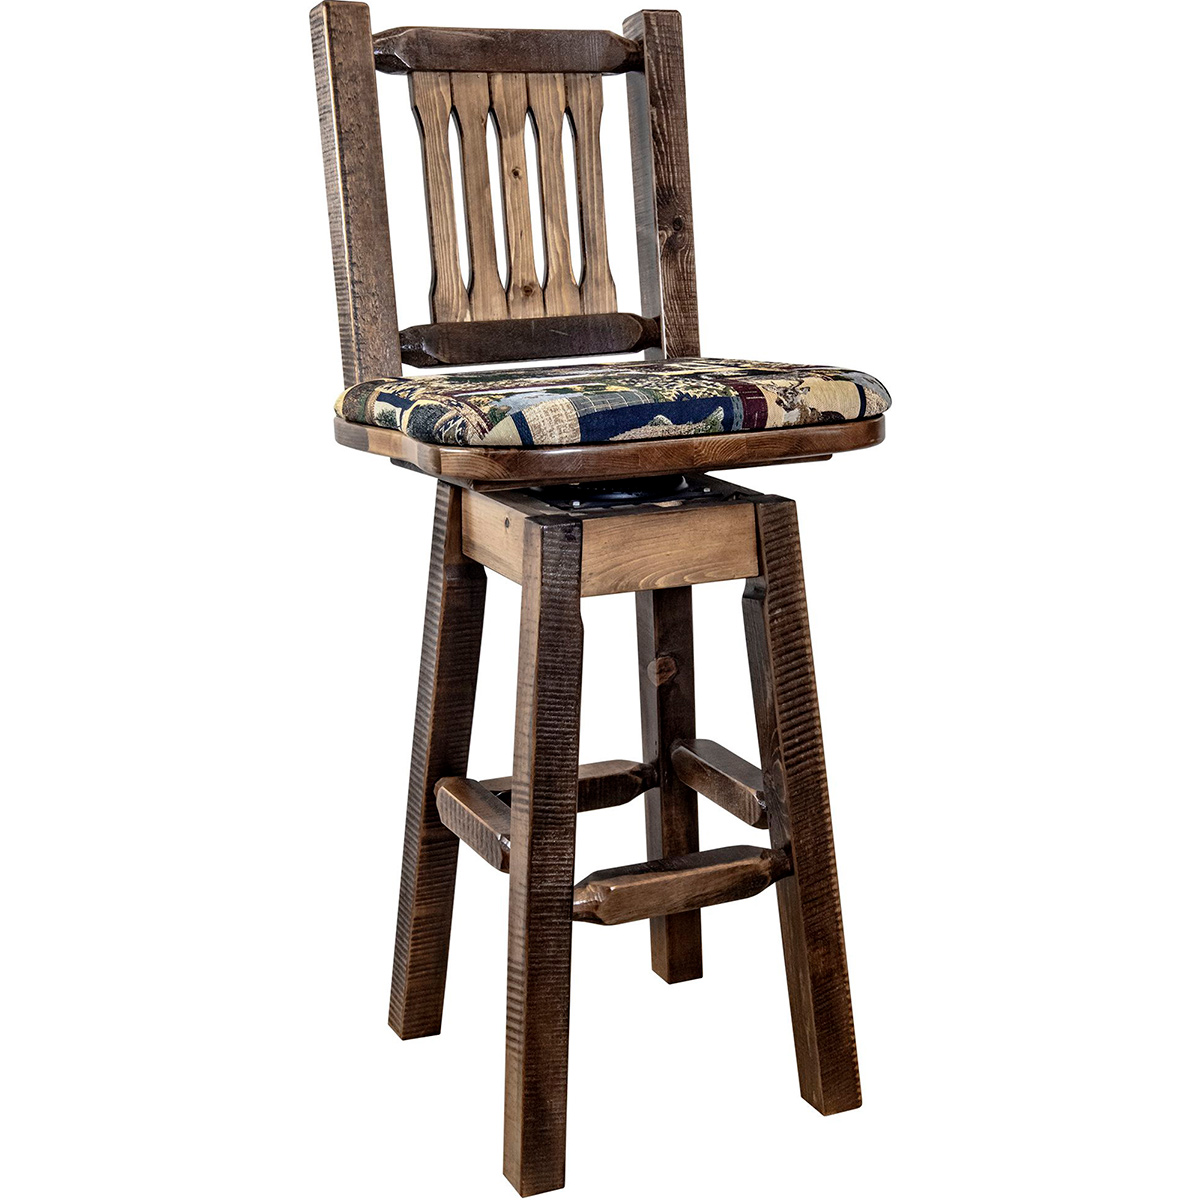 Ranchman's Barstool with Back, Swivel, Woodland Upholstered Seat, Stain & Clear Lacquer Finish